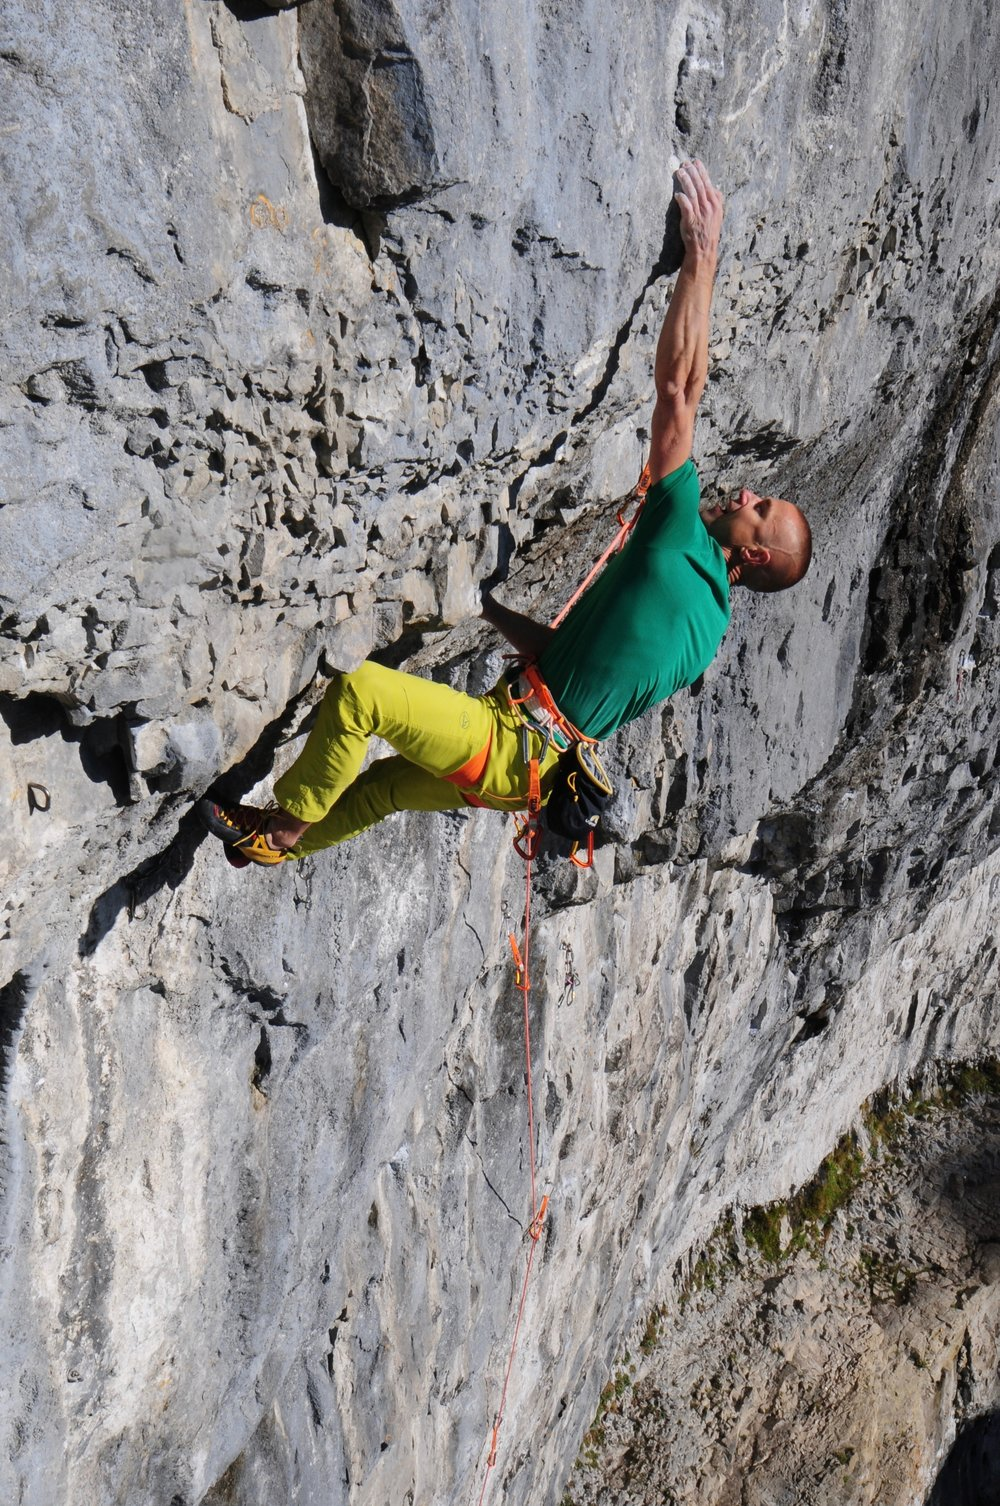 Wearing the Sitta harness on Sabotage 8c+, Malham Cove. Photo: Ian Parnell